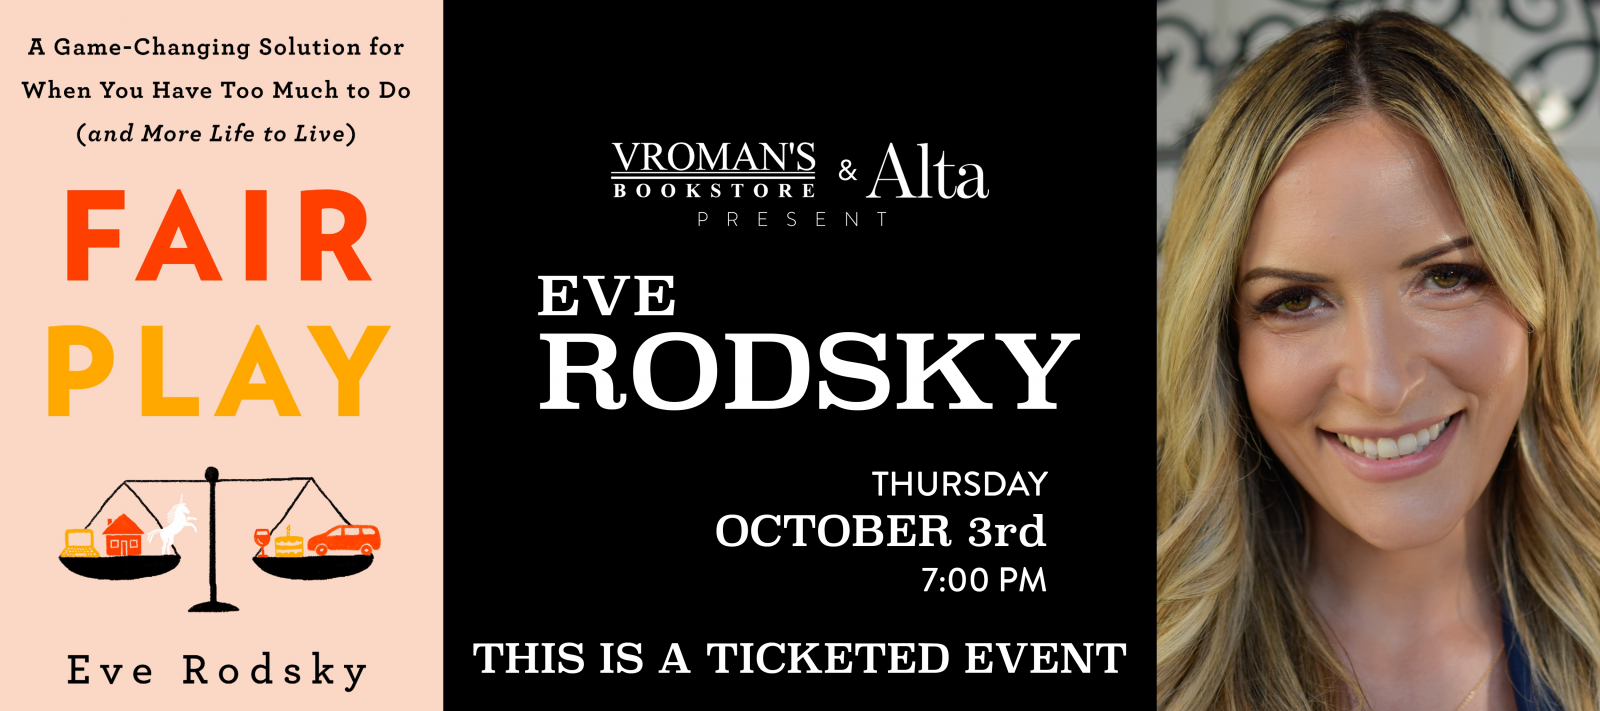 Eve Rodsky book signing Thursday October 3 at 7pm